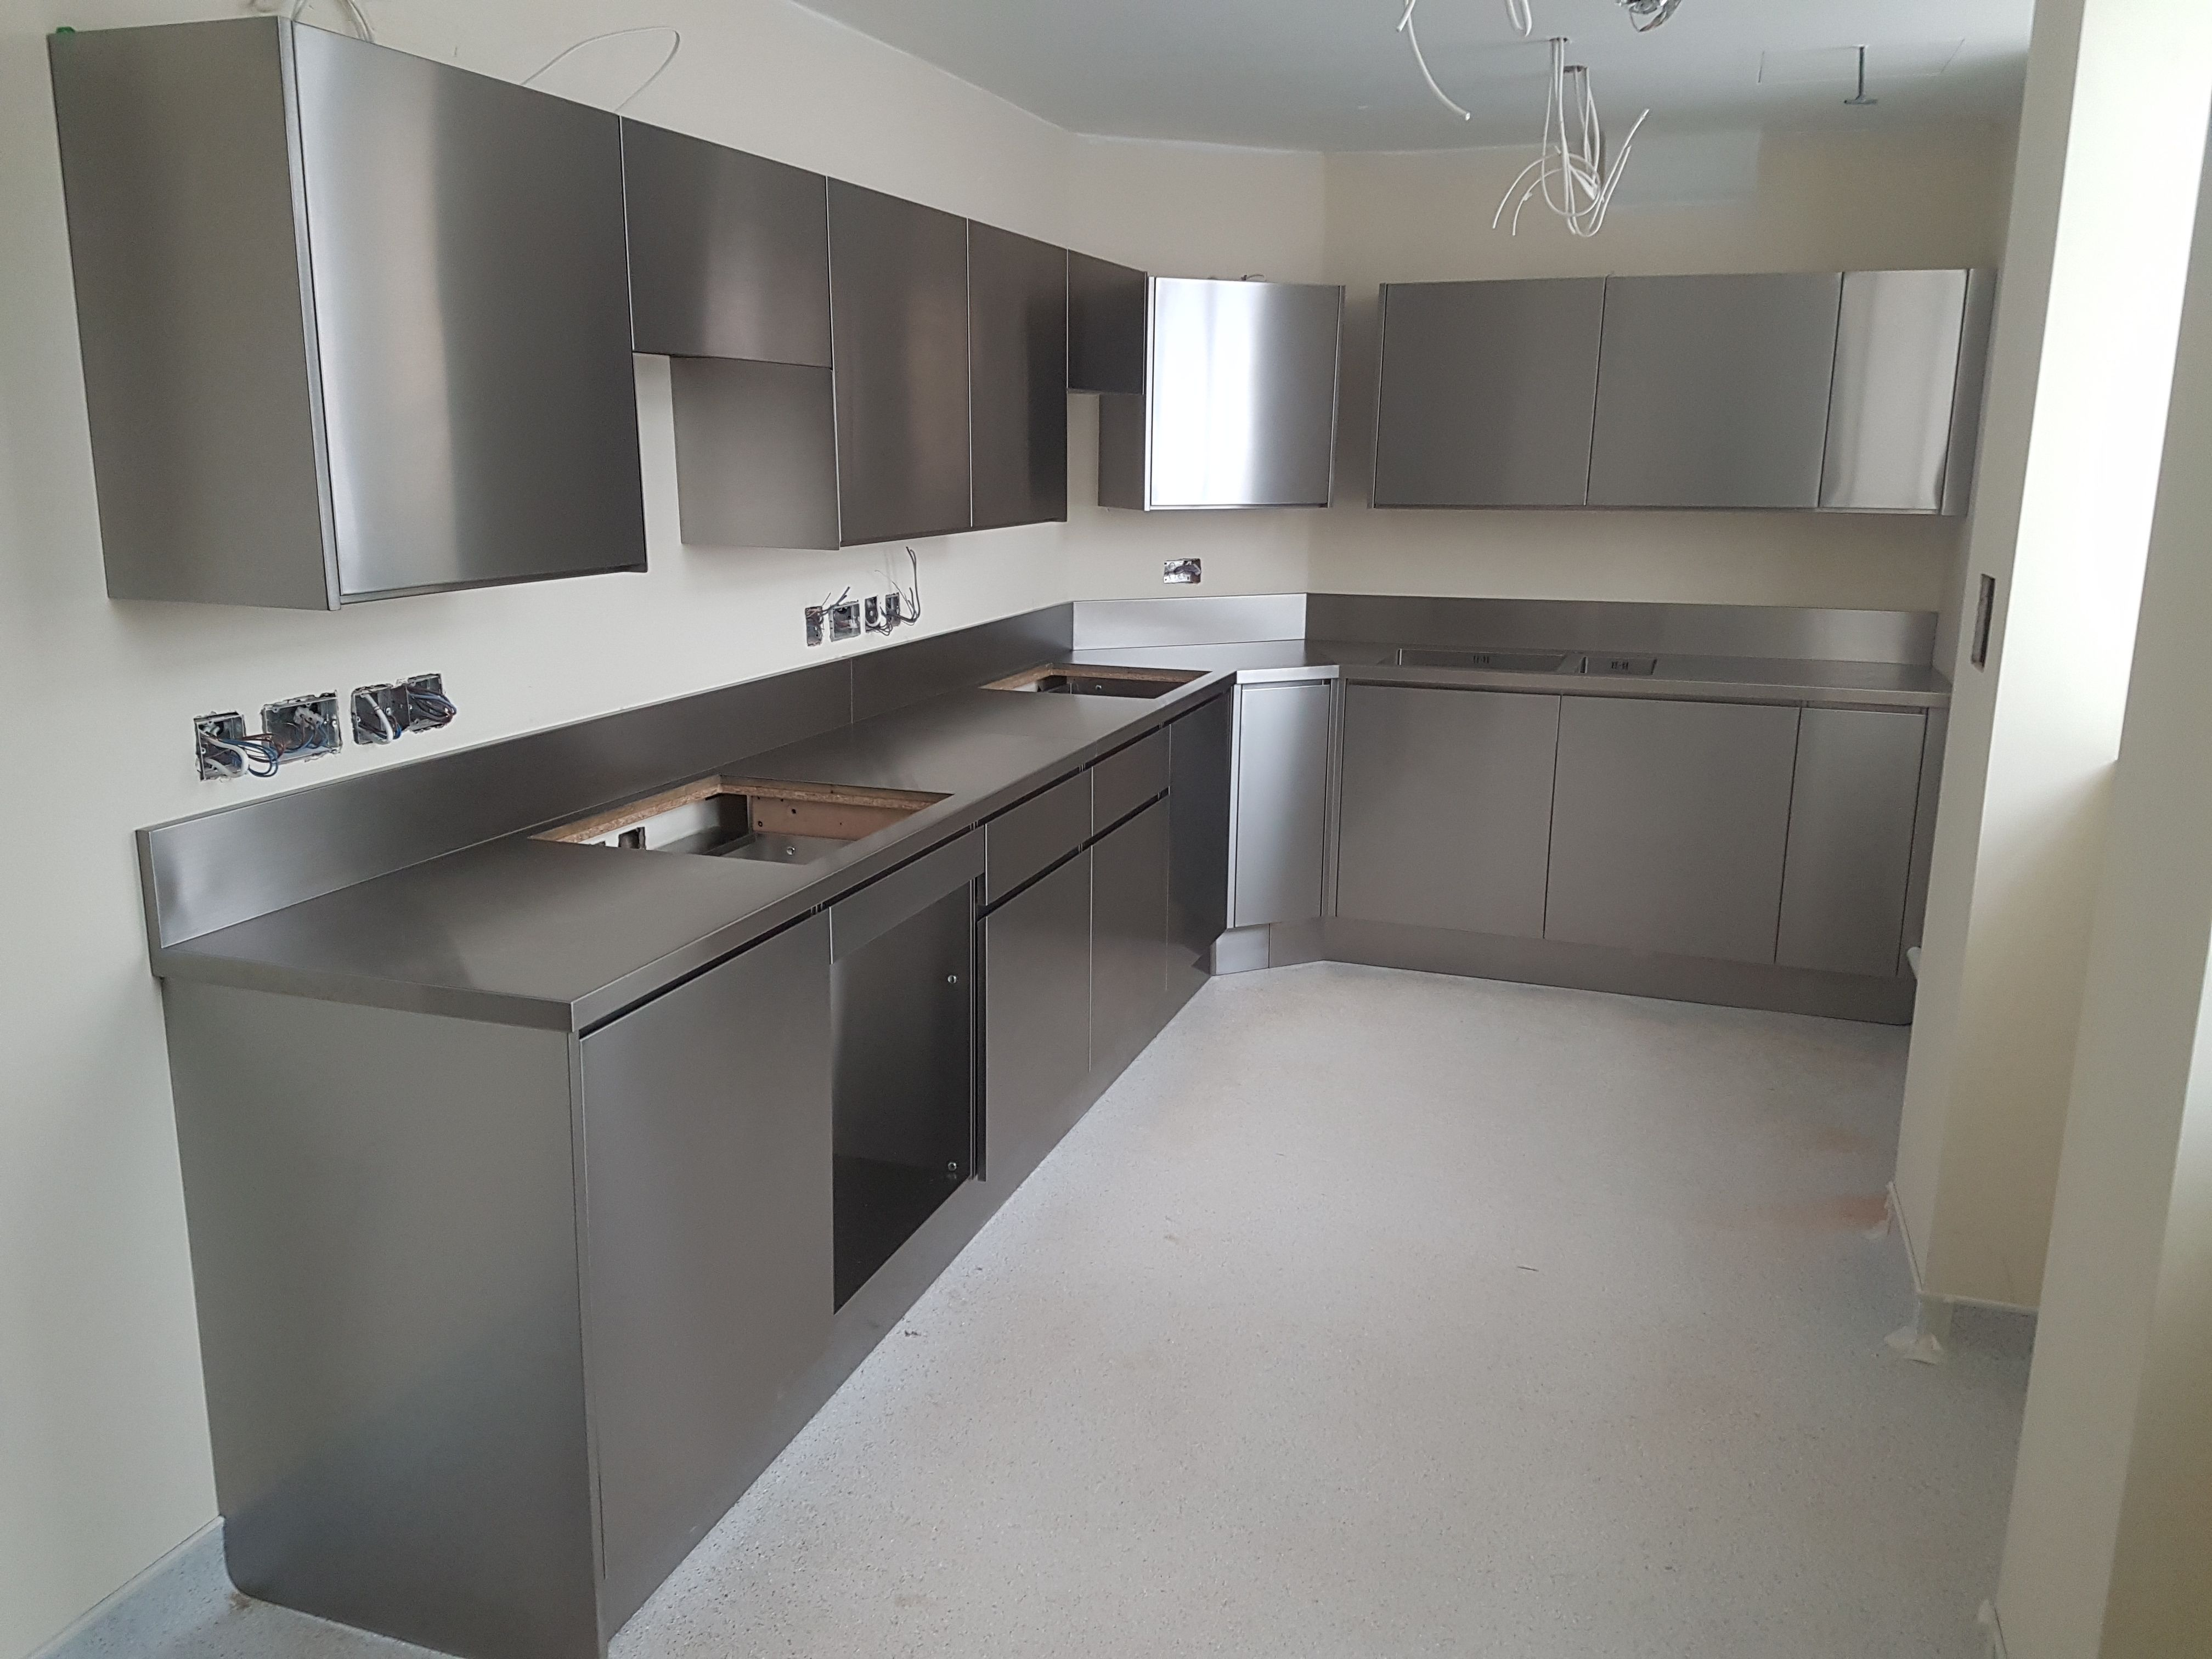 Recently Installed Stainless Steel Kitchen Stainless Steel Kitchen Design Kitchen Interior Design Modern Stainless Steel Kitchen Cabinets